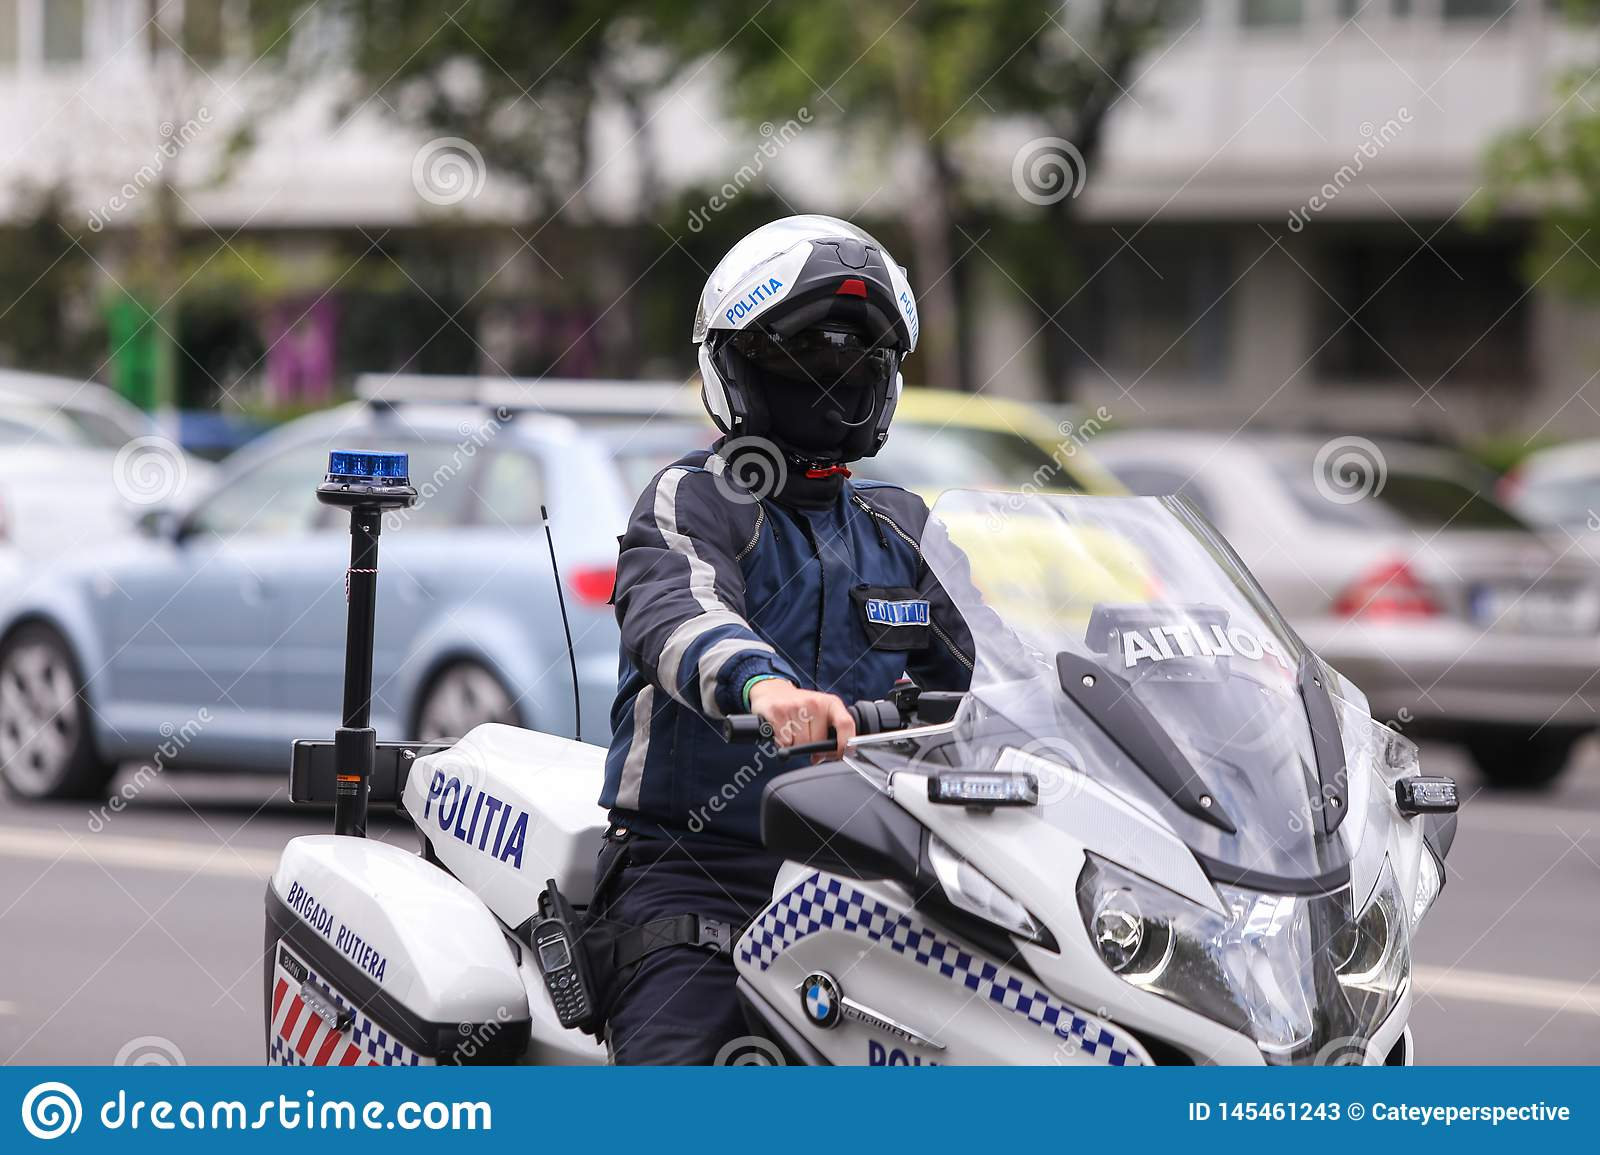 Police Officer Riding A Bmw Motorcycle In The Bucharest City Traffic Editorial Stock Photo Image Of Cabin Balaclava 145461243